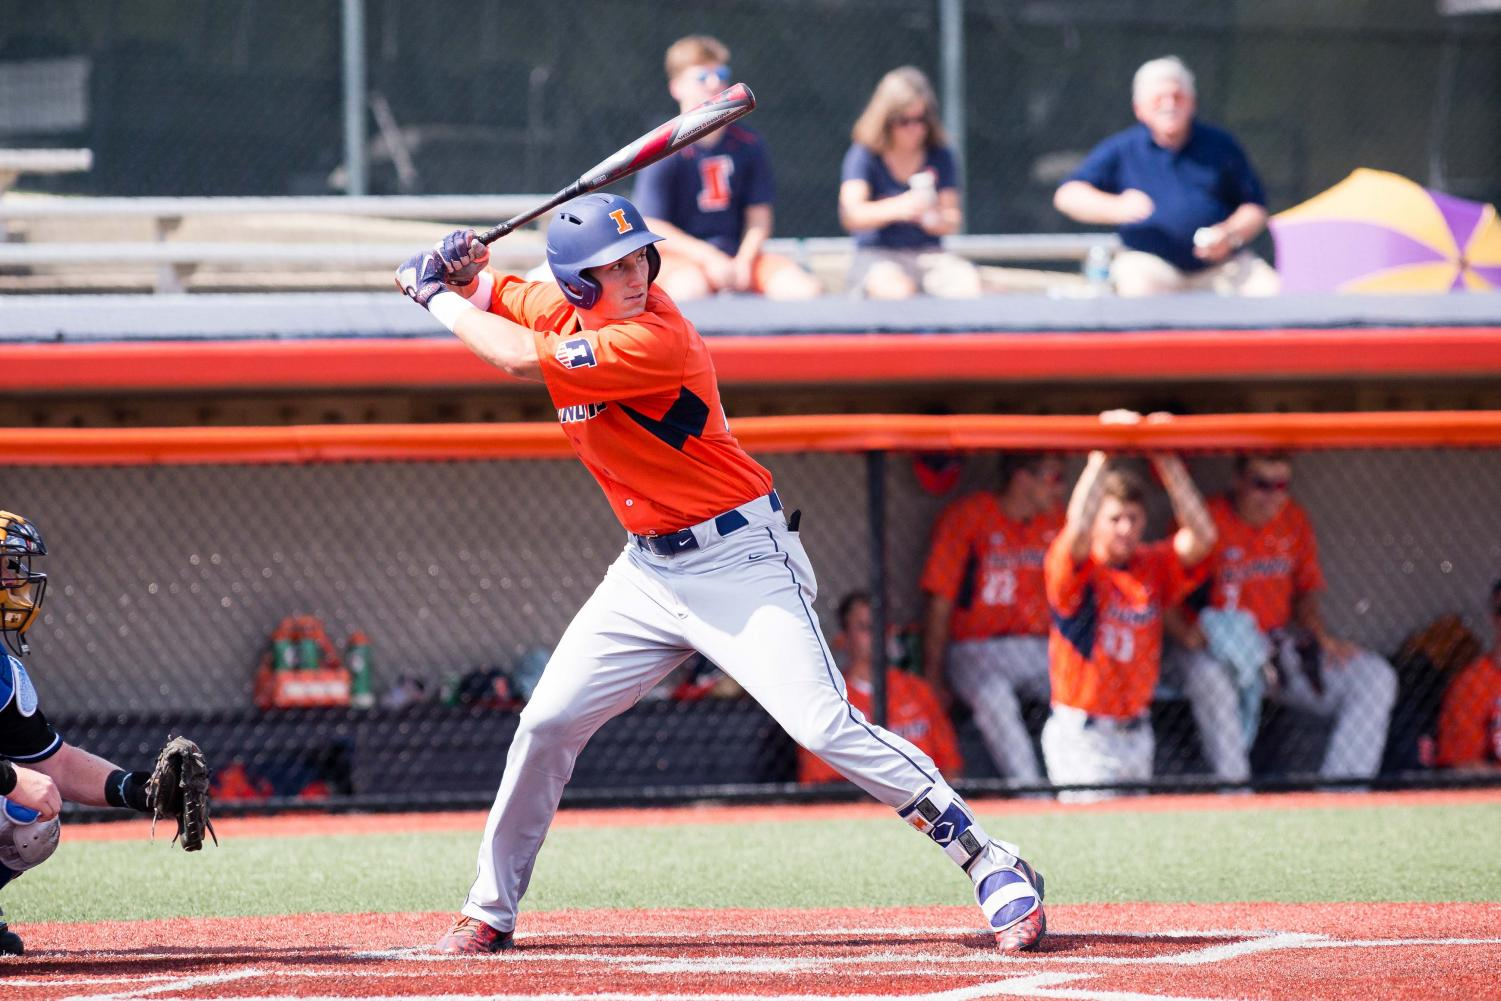 Illinois outfielder Doran Turchin waits for the pitch during the game against Indiana State at Illinois Field on Sept. 24. Turchin was drafted by the Baltimore Orioles in the 14th round of the MLB Draft.